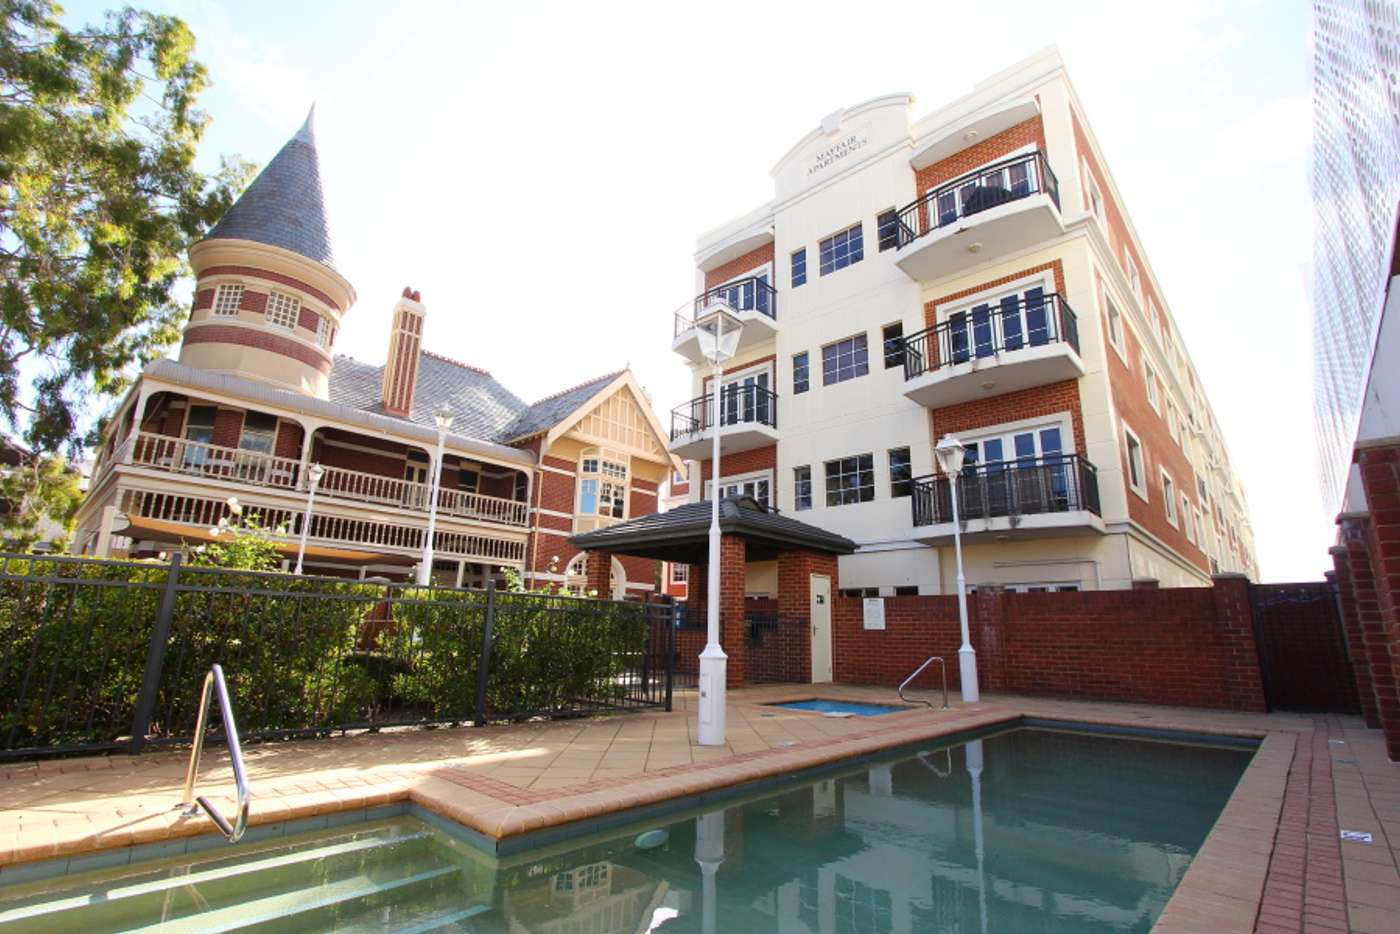 Main view of Homely apartment listing, 32/2 Mayfair St, West Perth WA 6005